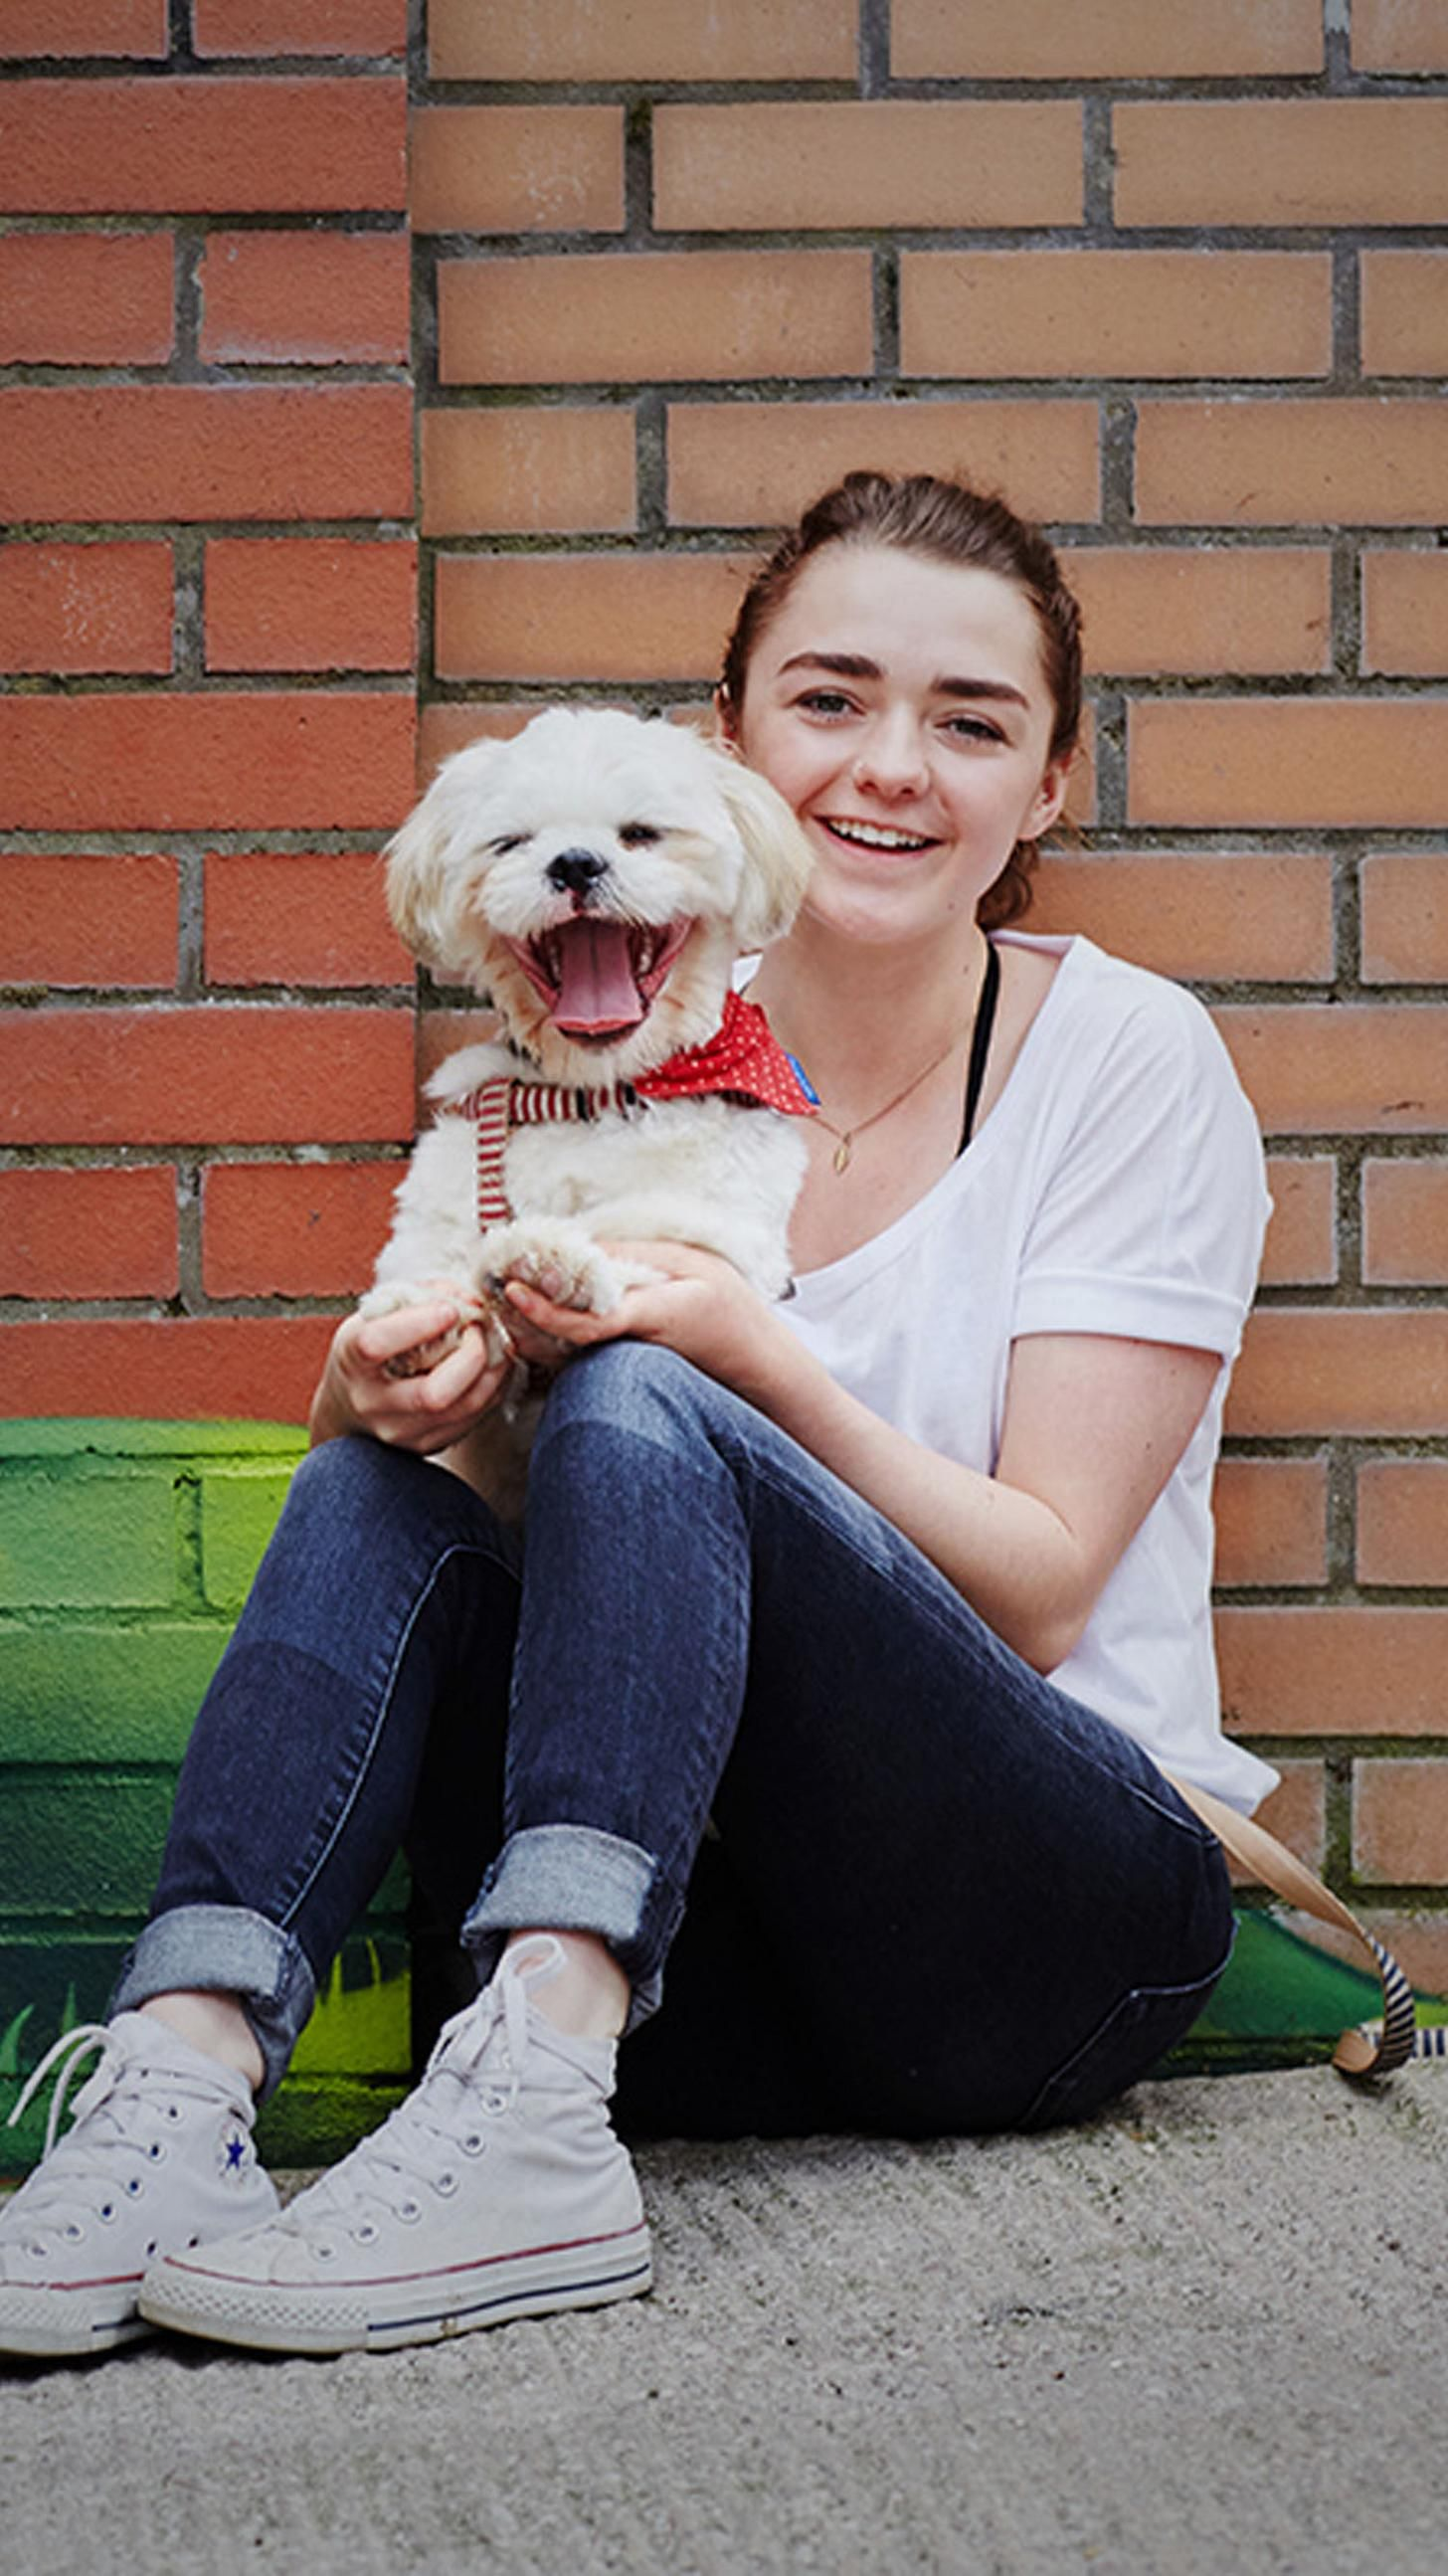 1456x2590 - Maisie Williams Wallpapers 24